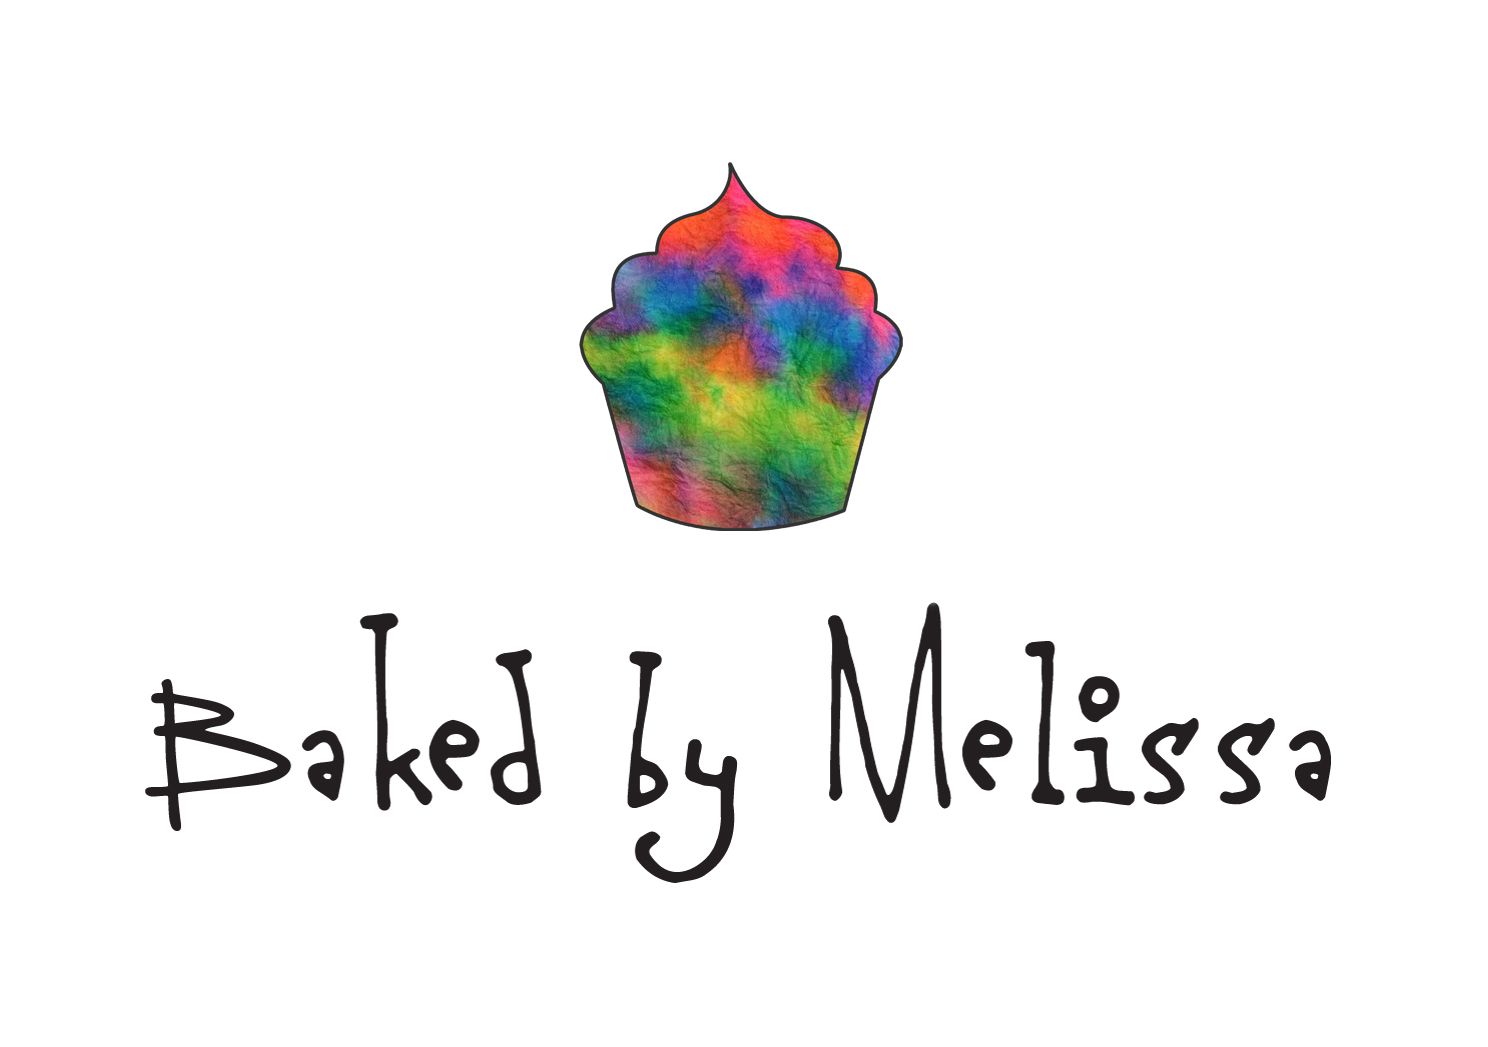 Baked by Melissa.jpg